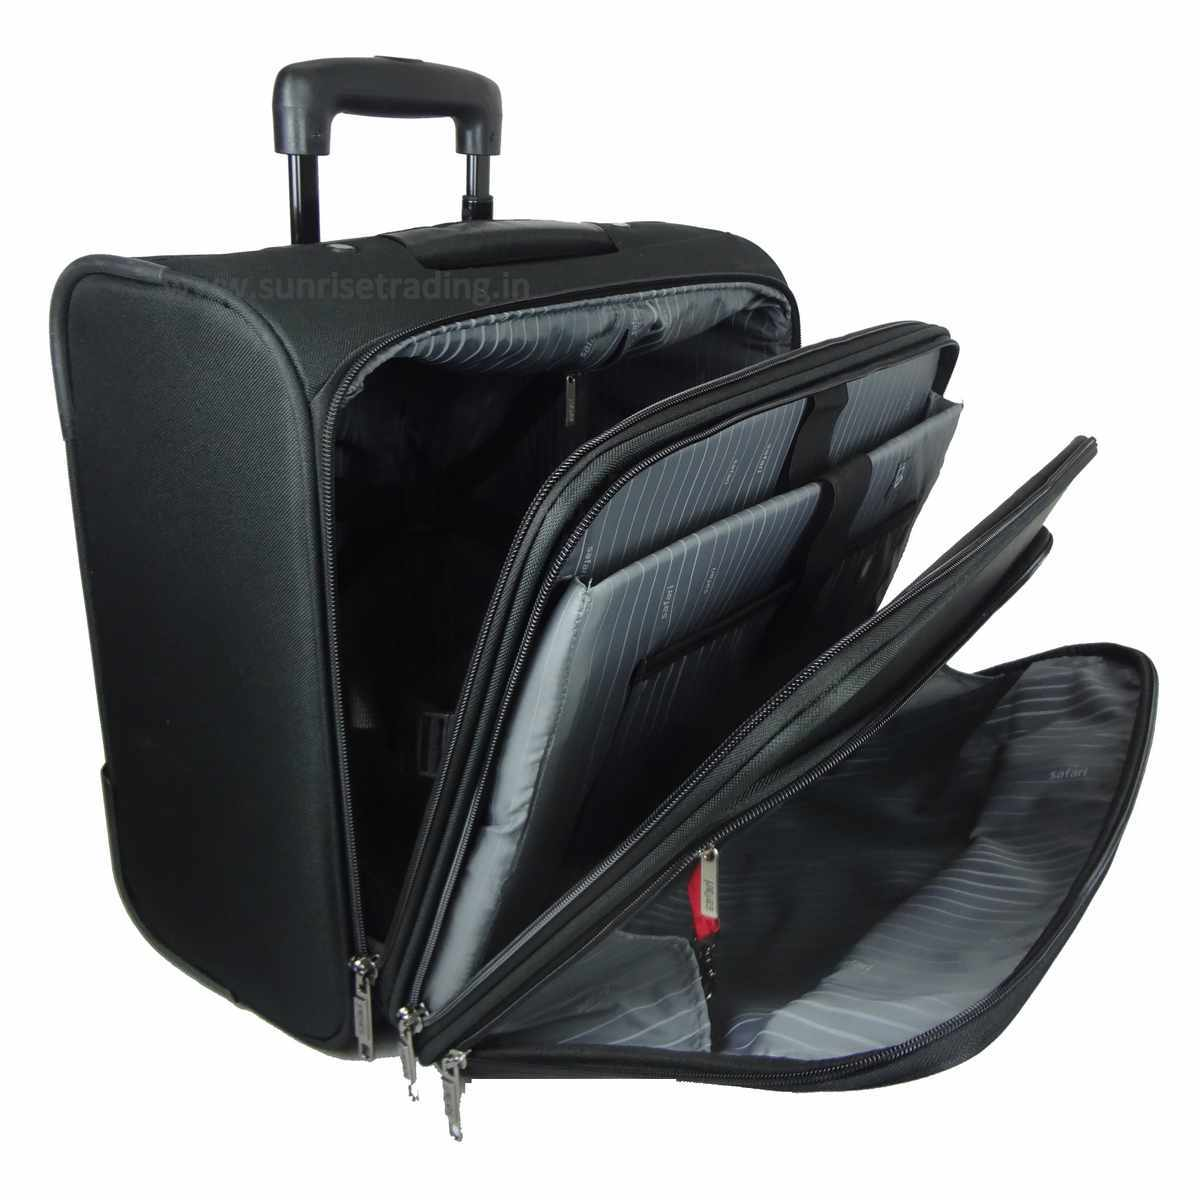 Safari Pisa Laptop Trolley Overnighter Business Bag Sunrise Trading Co Bangalore